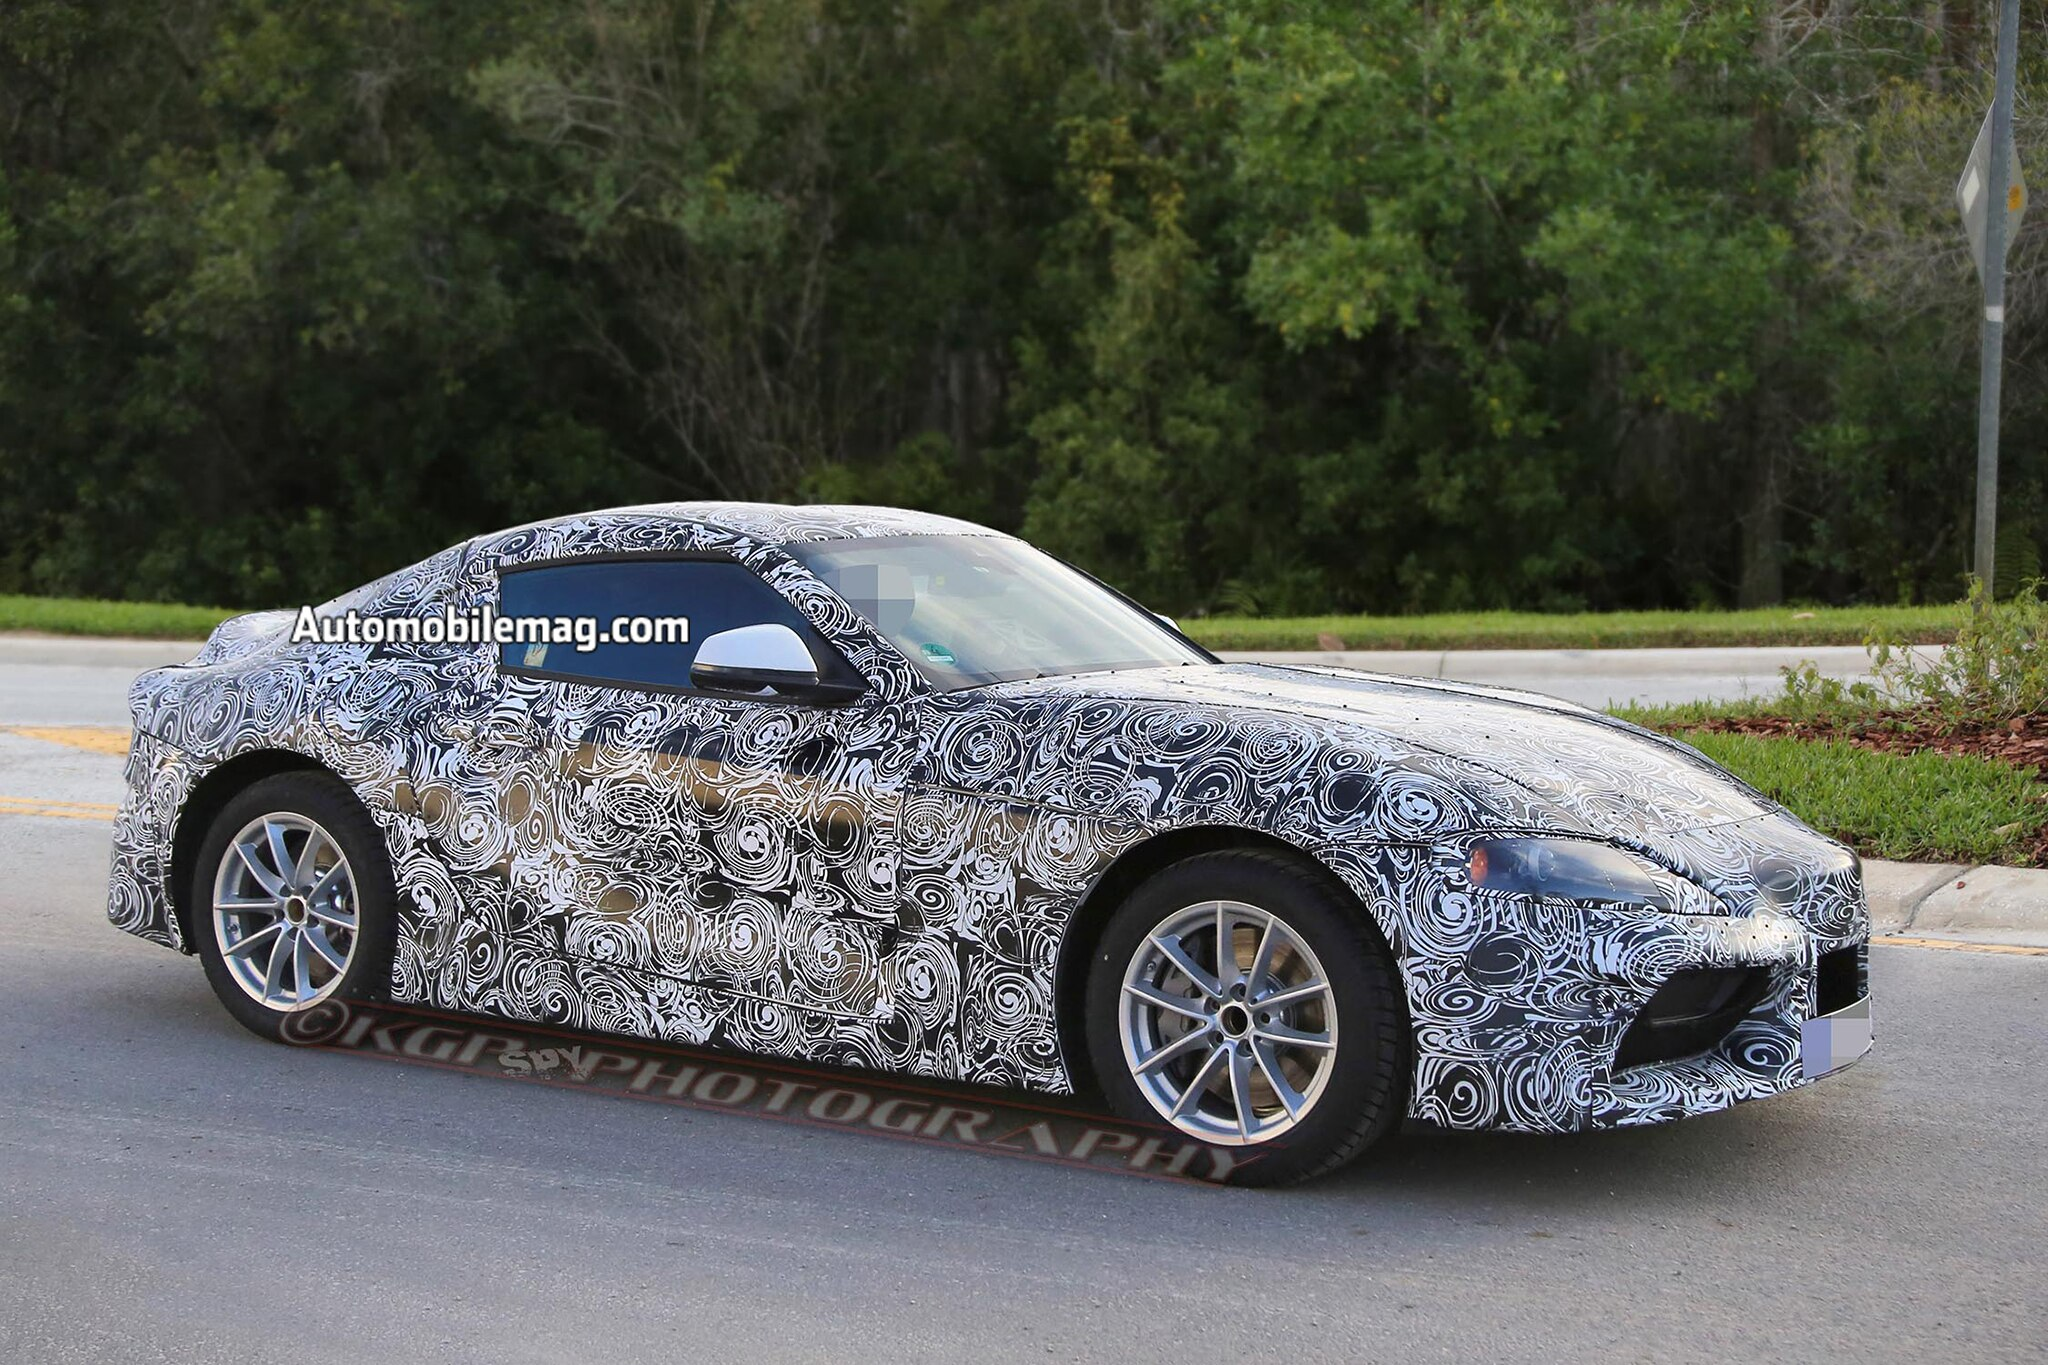 2019 Toyota Supra Turbo What to Expect